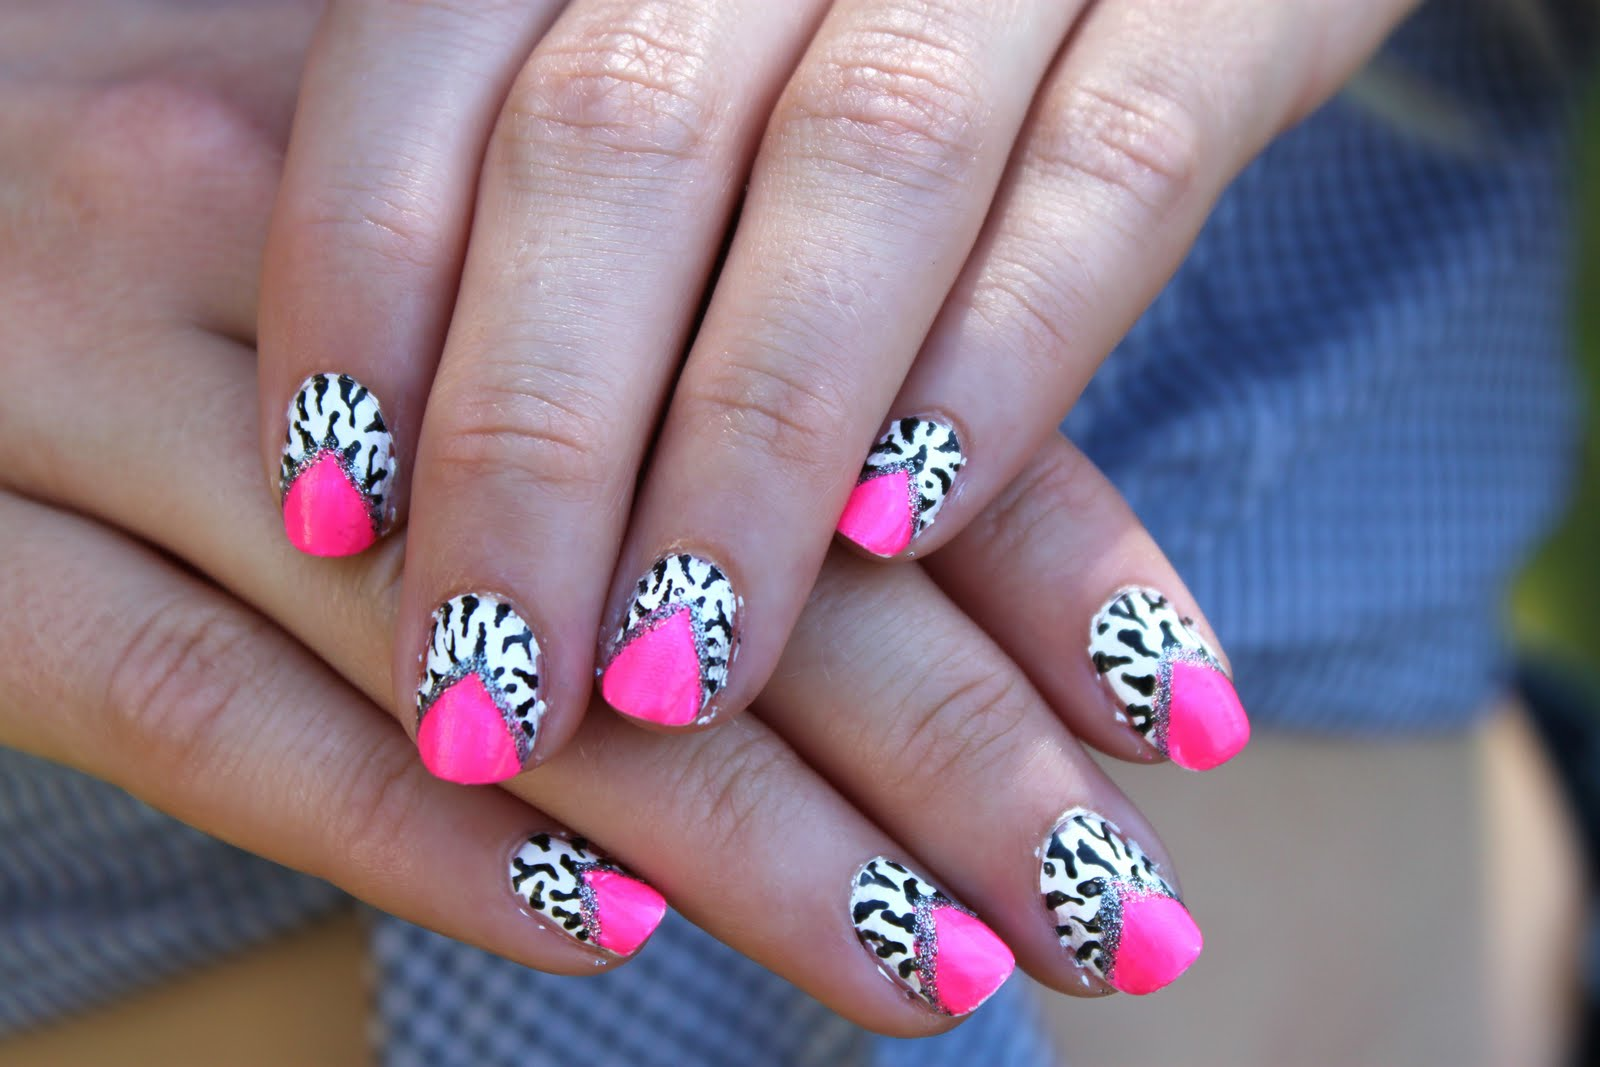 Crazy About Nails: Neon pink and white zebra nails